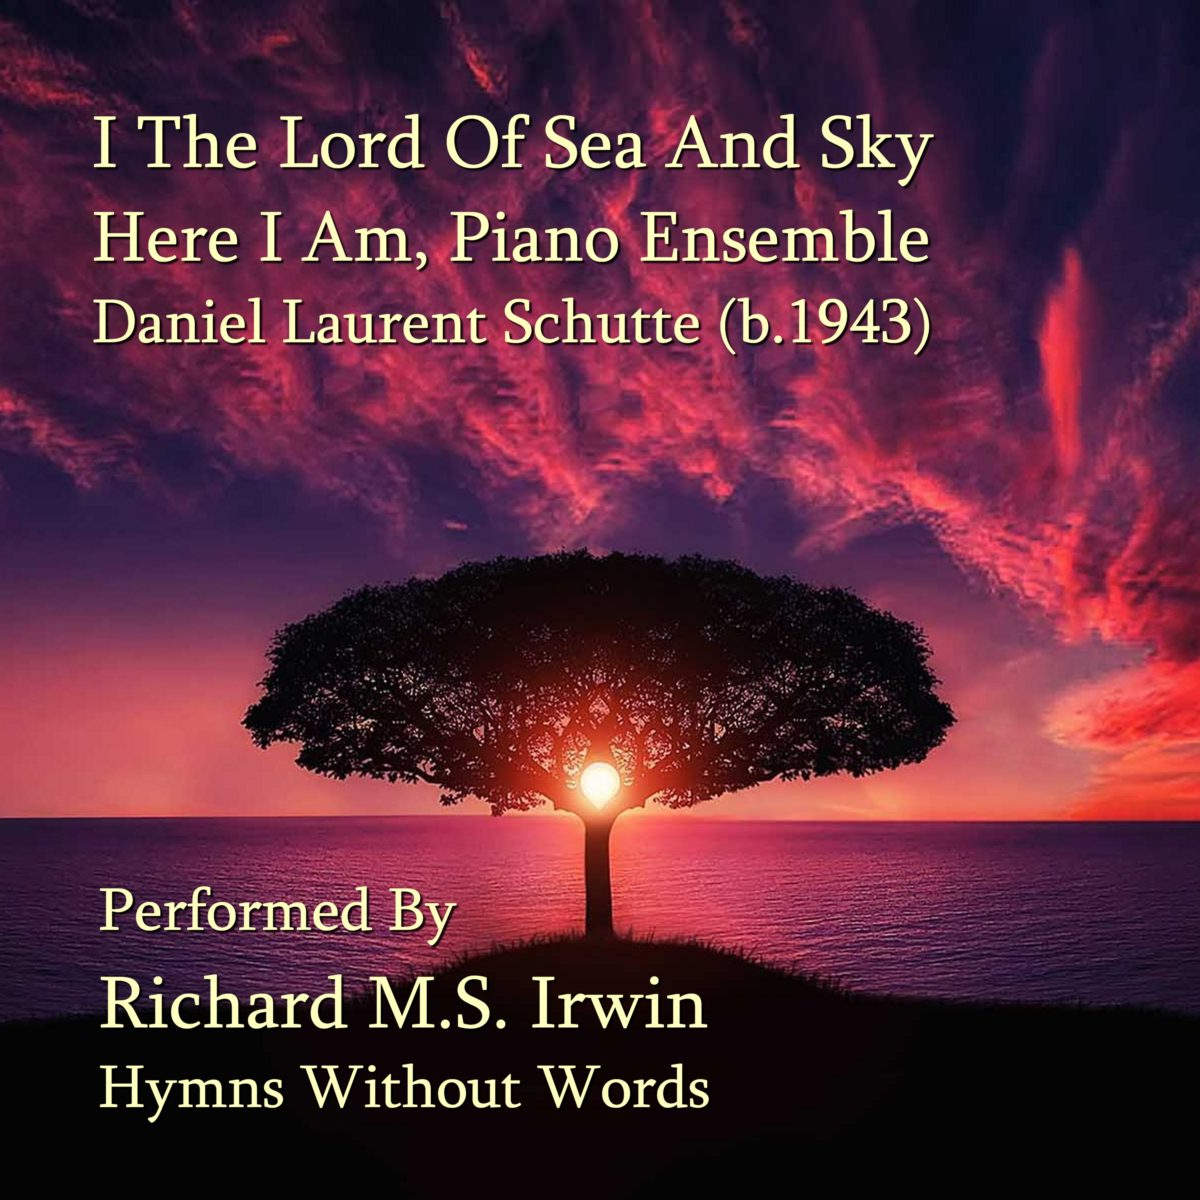 I The Lord Of Sea And Sky (Here I Am Lord, Piano Ensemble, 3 Verses)